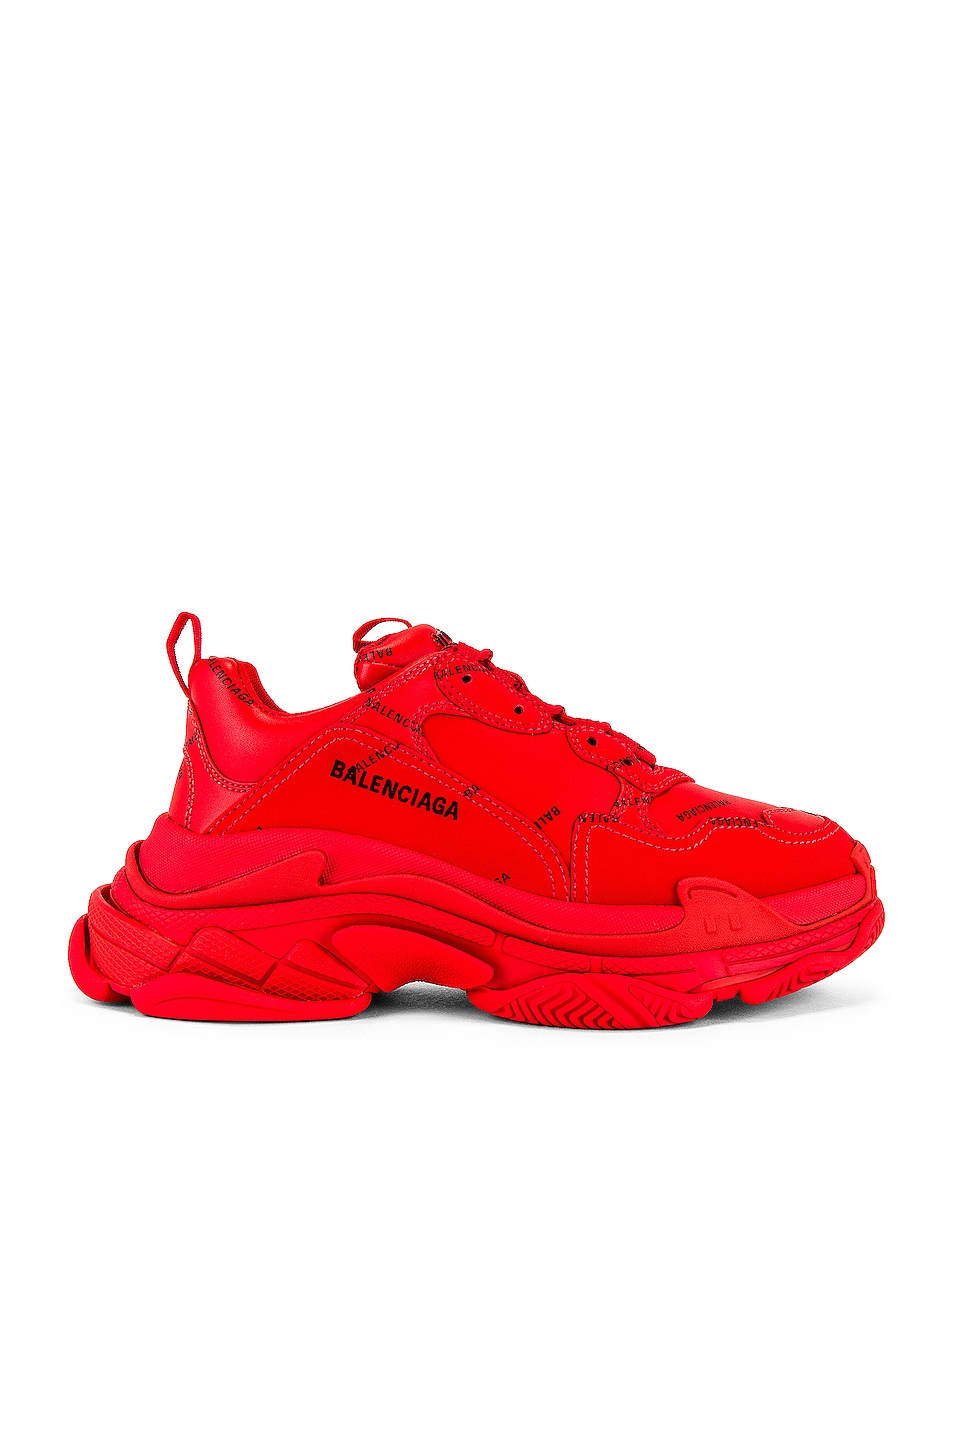 Image 1 of Balenciaga Triple S Sneaker in Red & Black